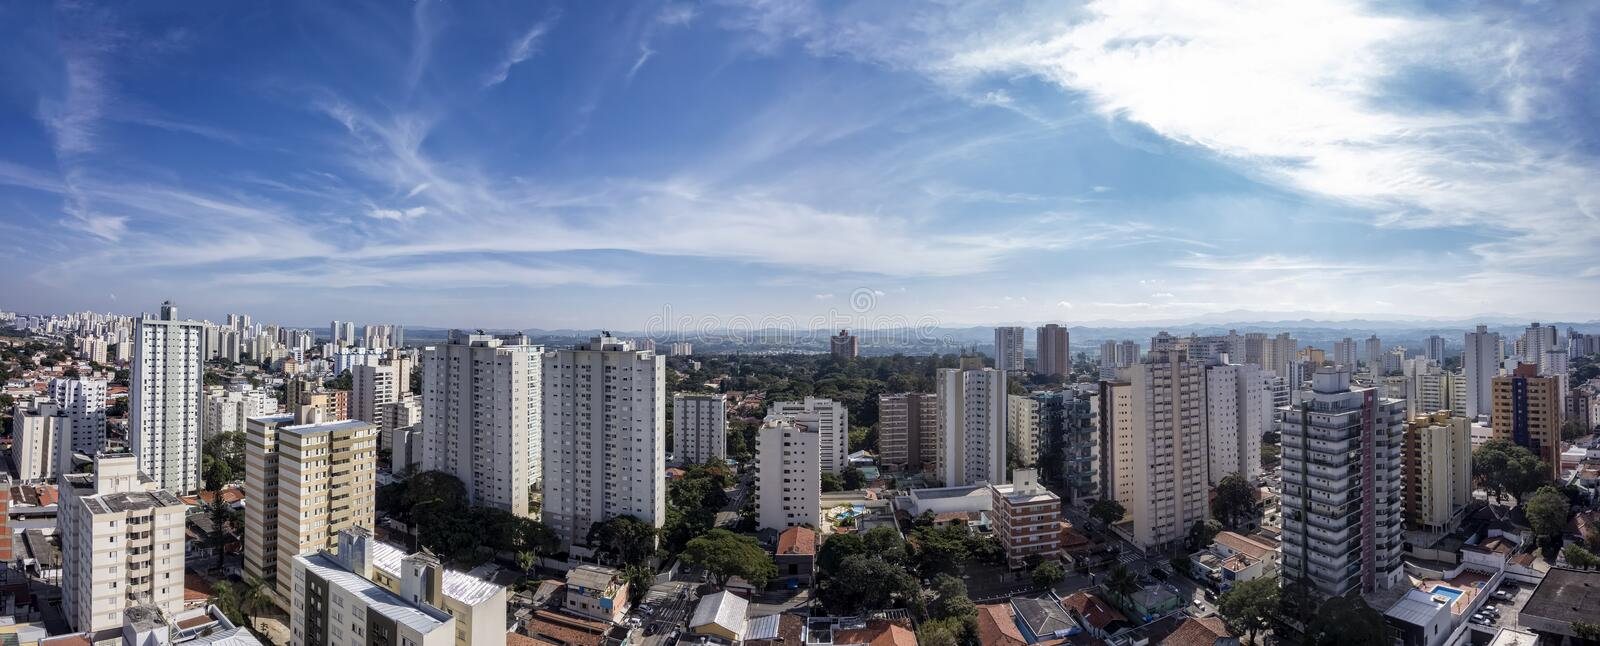 City Sao Jose dos Campos, SP / Brazil, in the afternoon panorama photo royalty free stock images